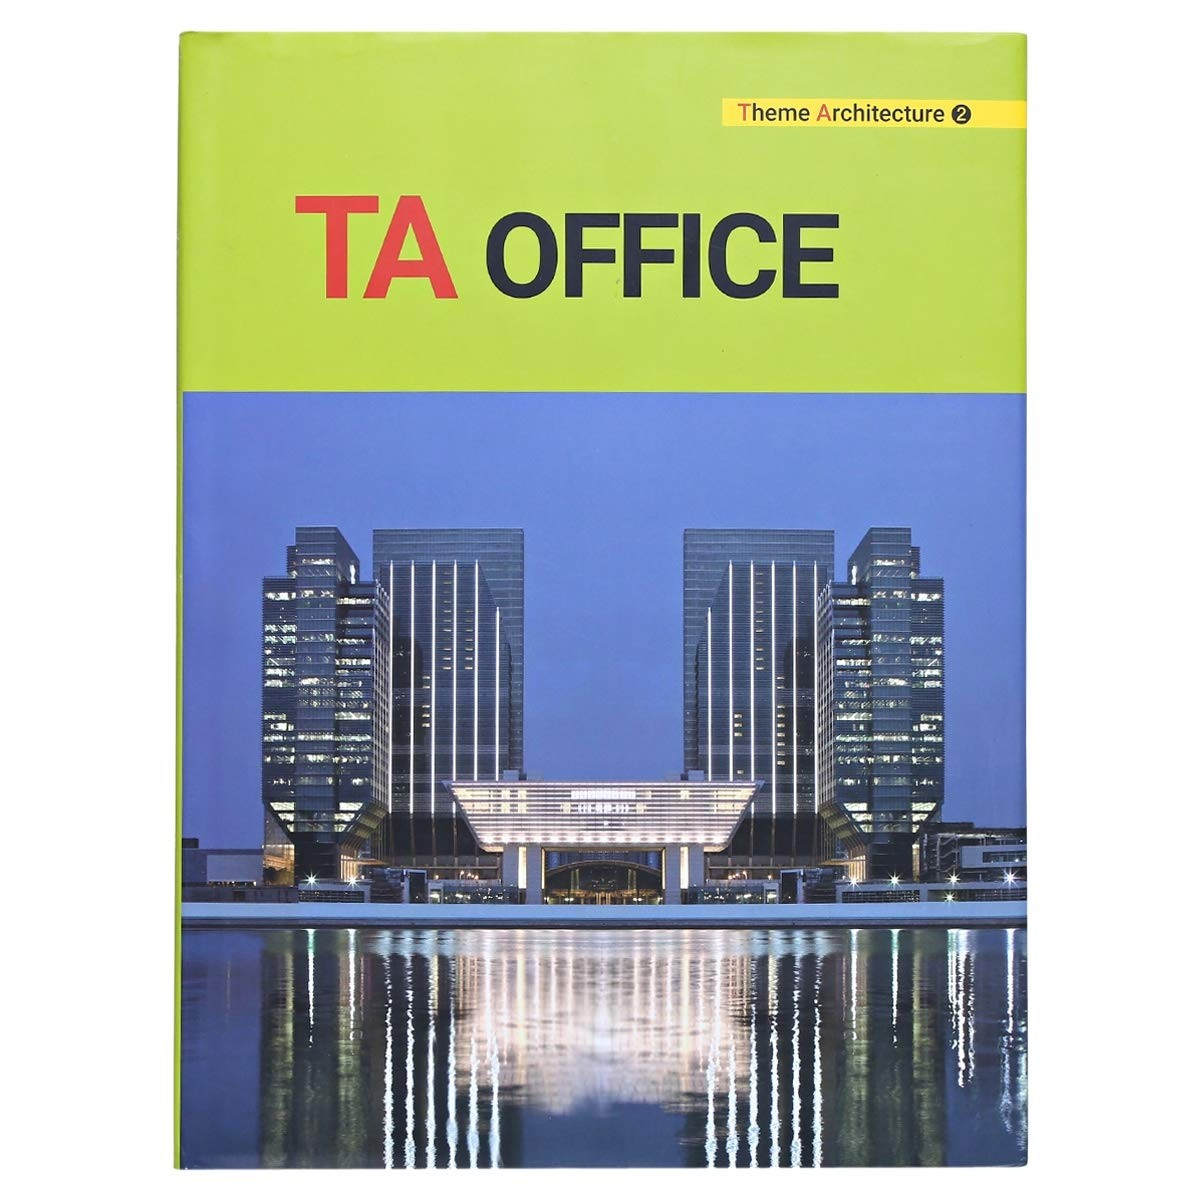 ta office theme architecture 2 - hardcover